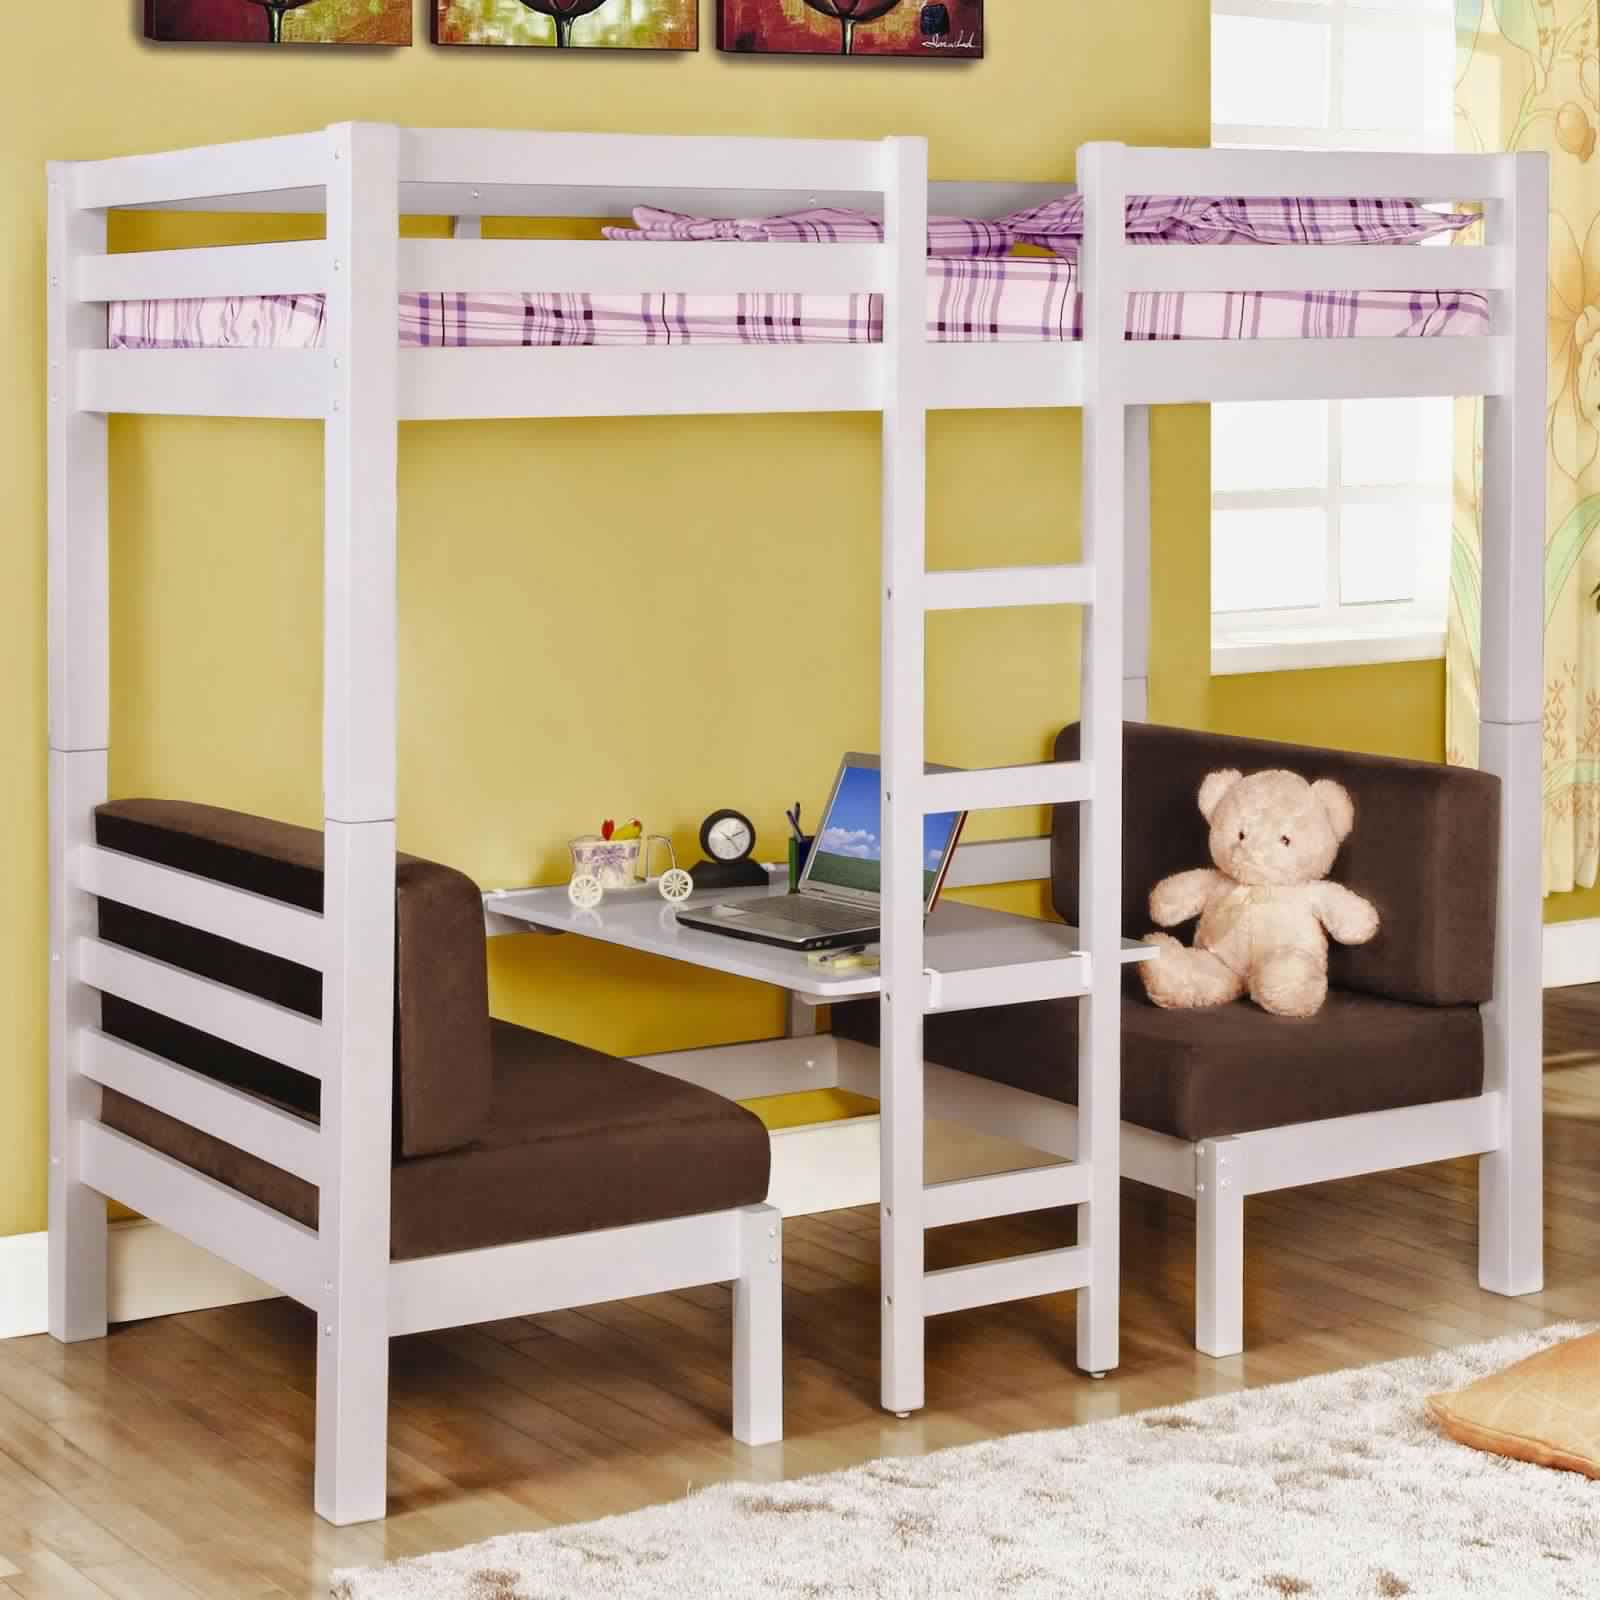 Bunk Bed with Desk for children